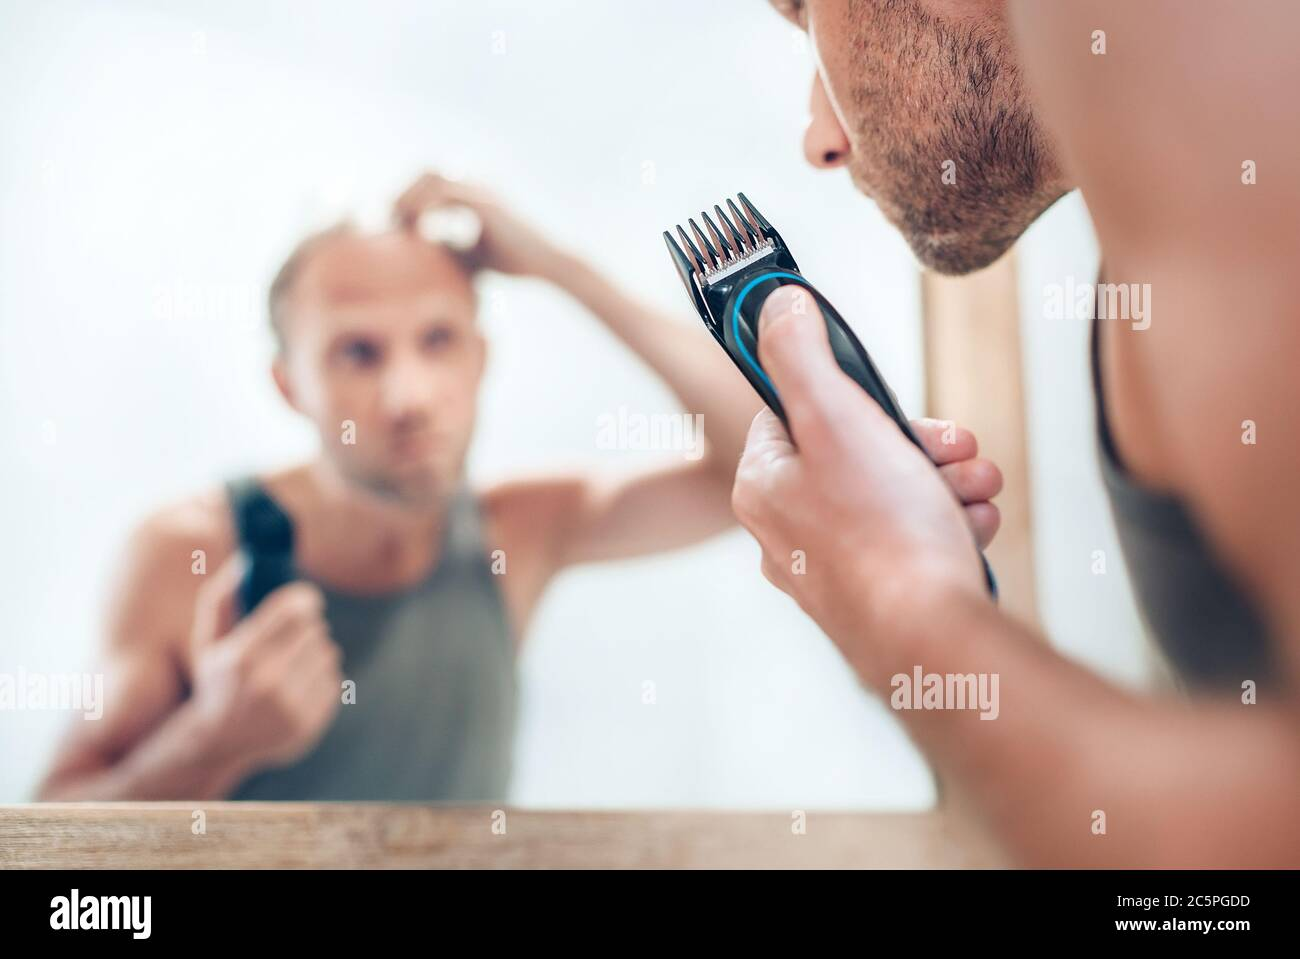 Man looking at bathroom mirror and thinking about his new style haircut analyzing hairs.Electric rechargeable Trimmer close up focus image. Radical de Stock Photo